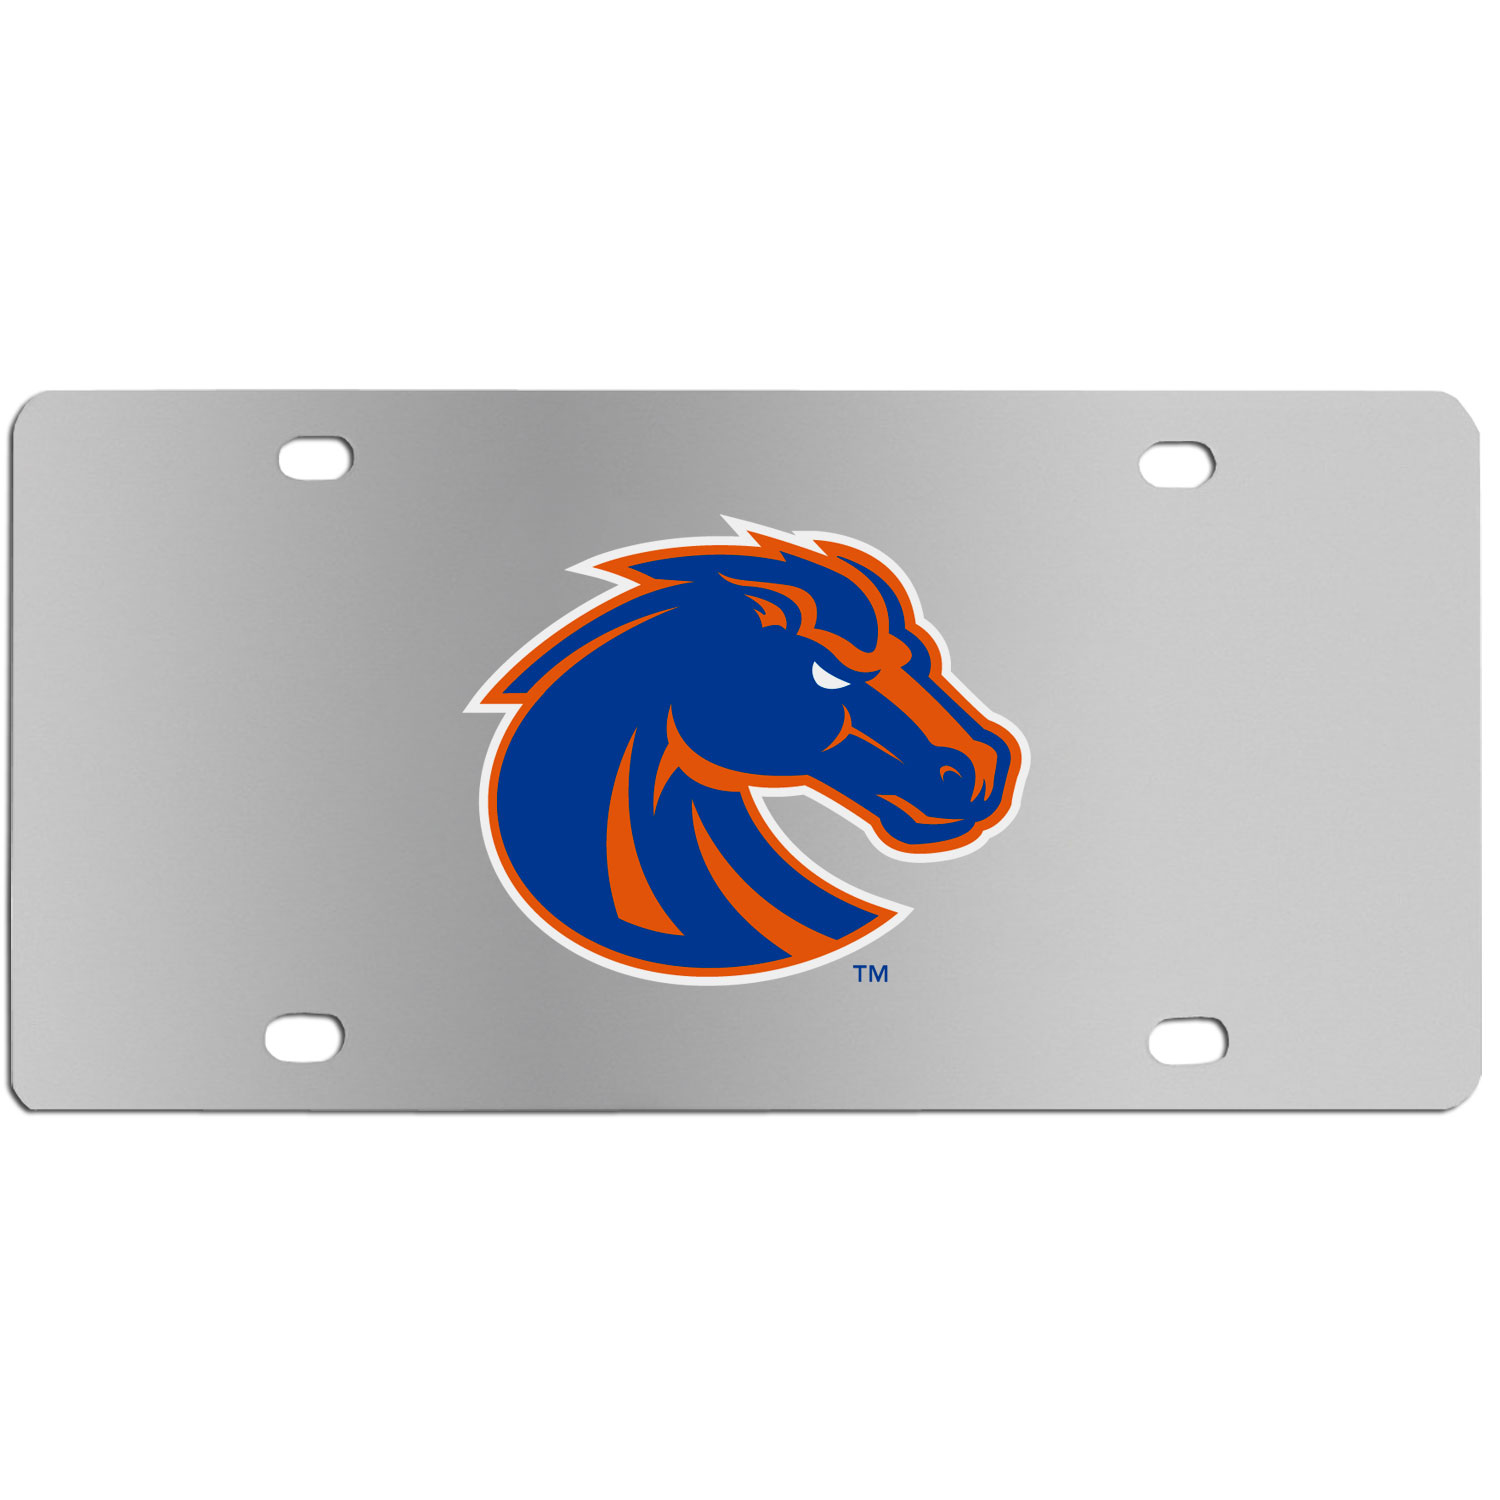 Boise St. Broncos Steel License Plate Wall Plaque - This high-quality stainless steel license plate features a detailed team logo on a the polished surface. The attractive plate is perfect for wall mounting in your home or office to become the perfect die-hard Boise St. Broncos fan decor.